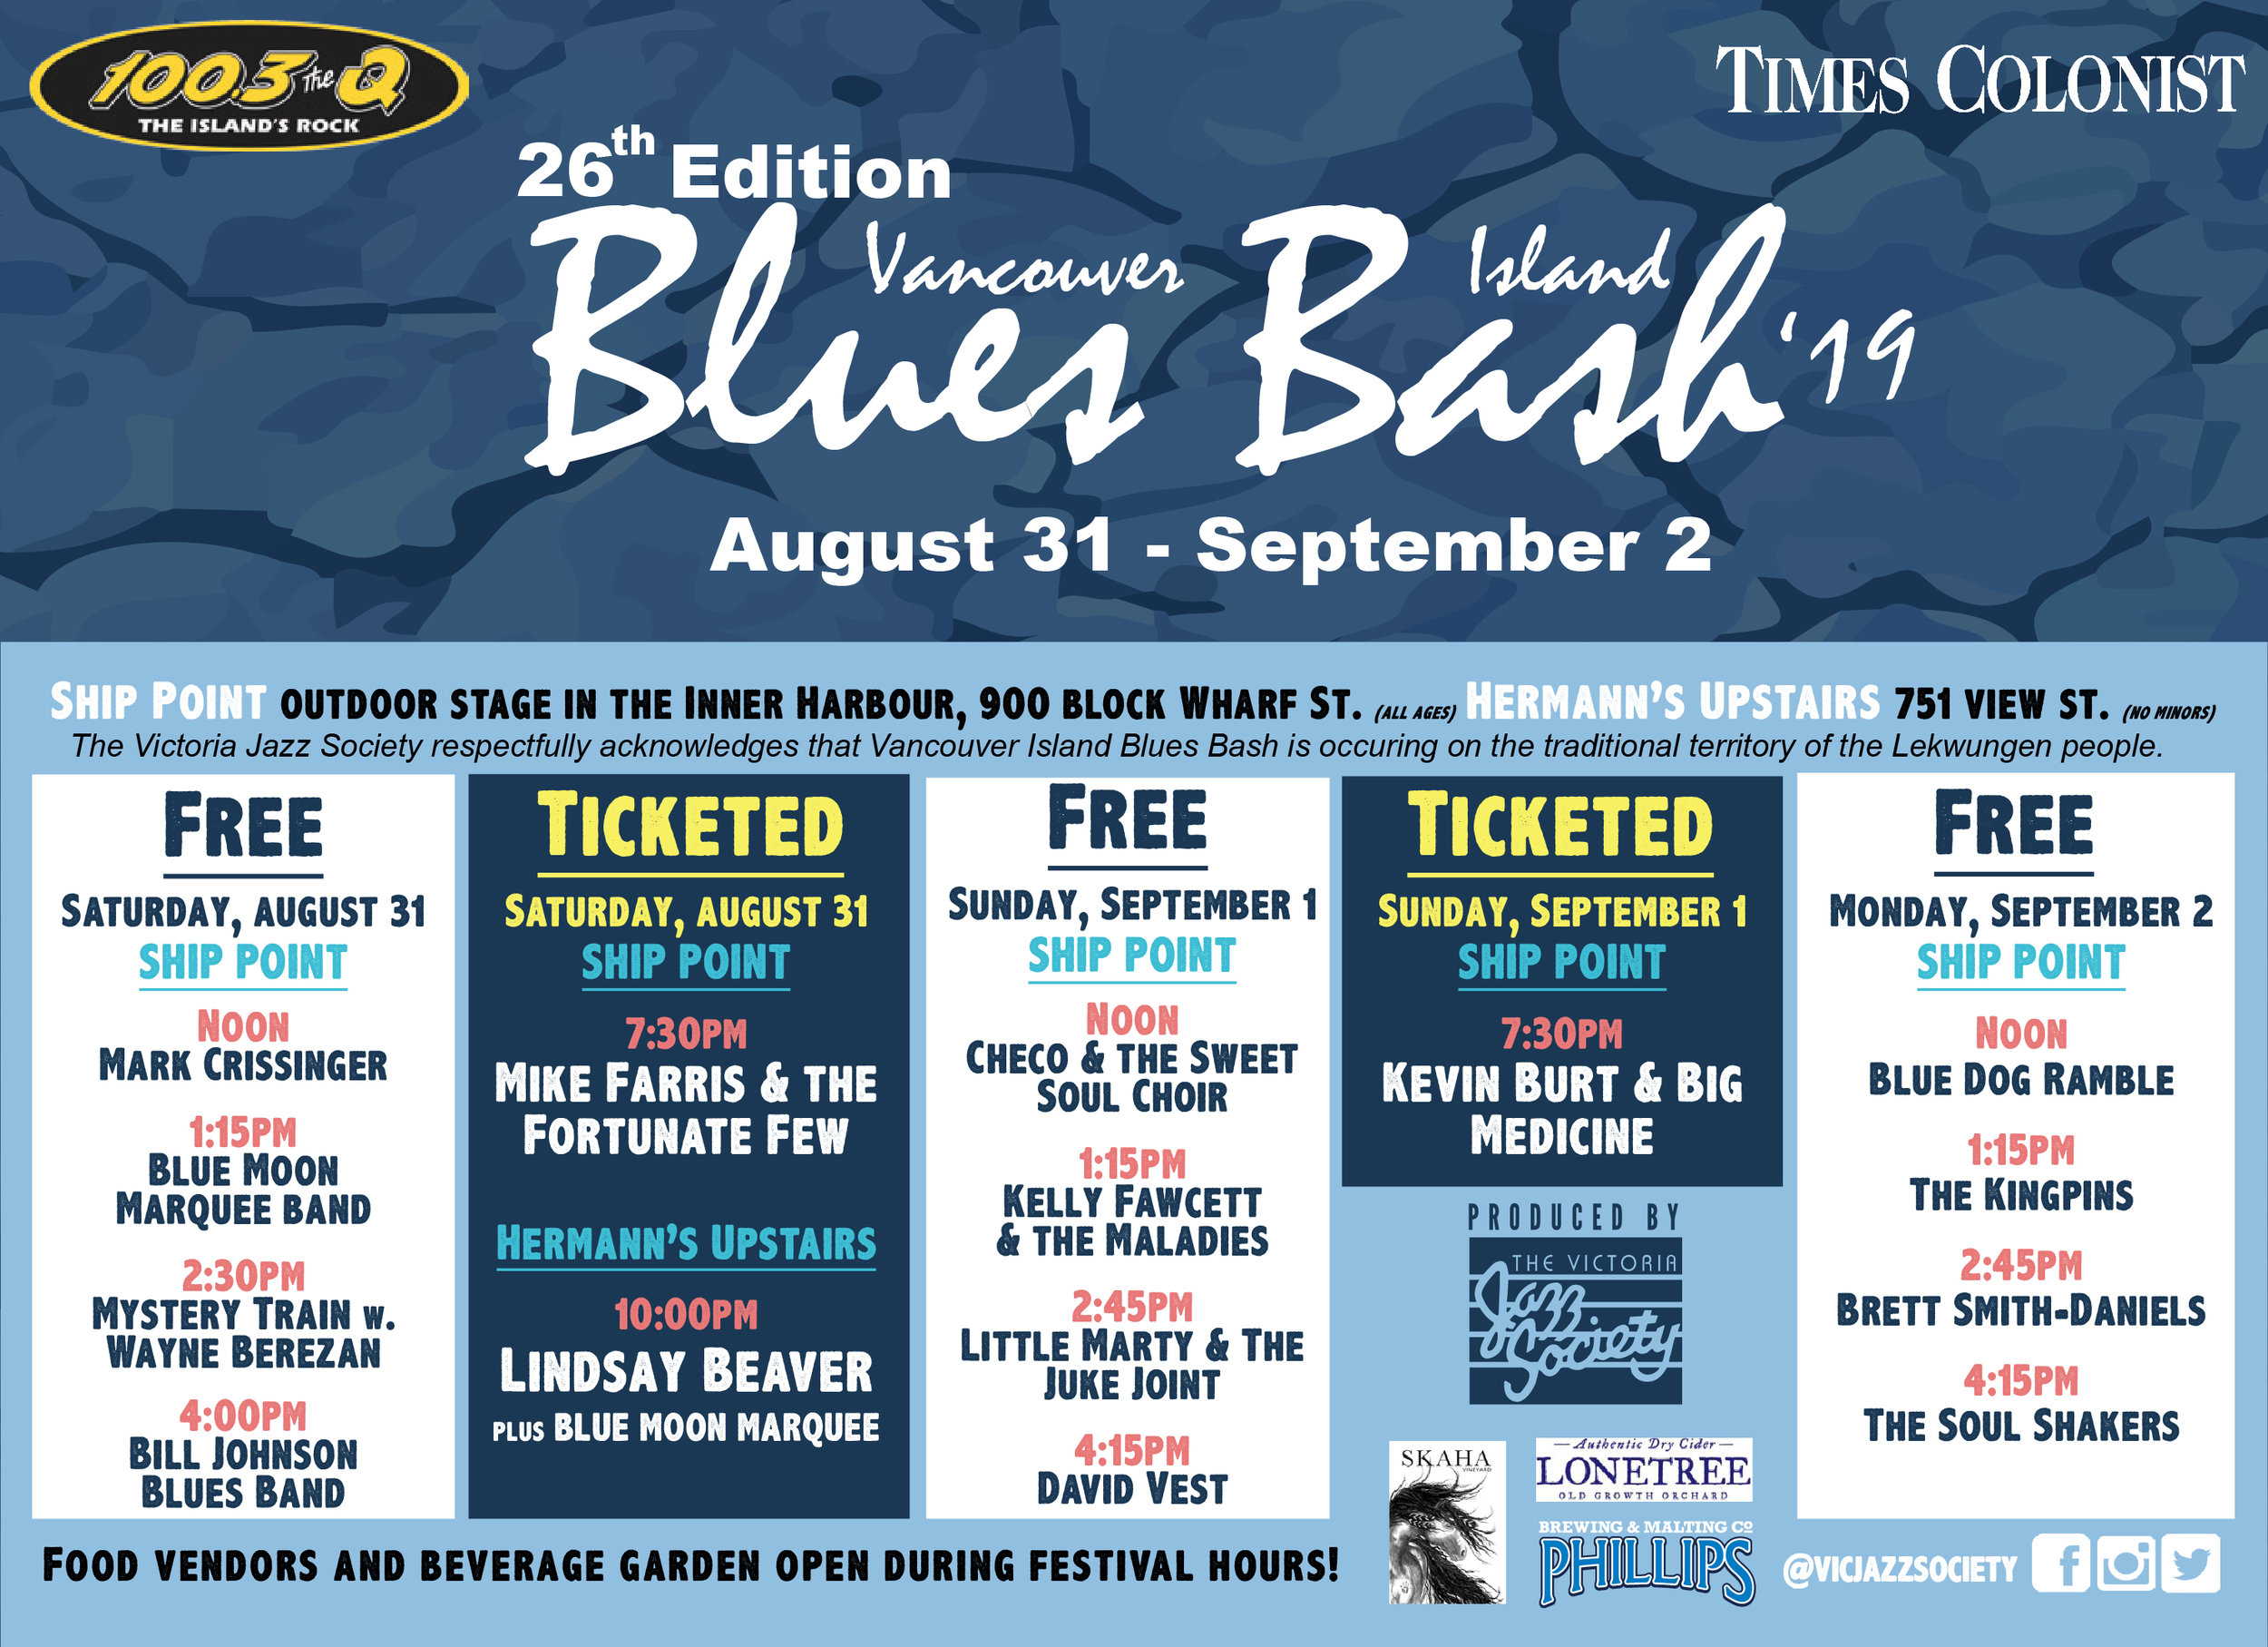 blues_bash_schedule_2019-01.jpg